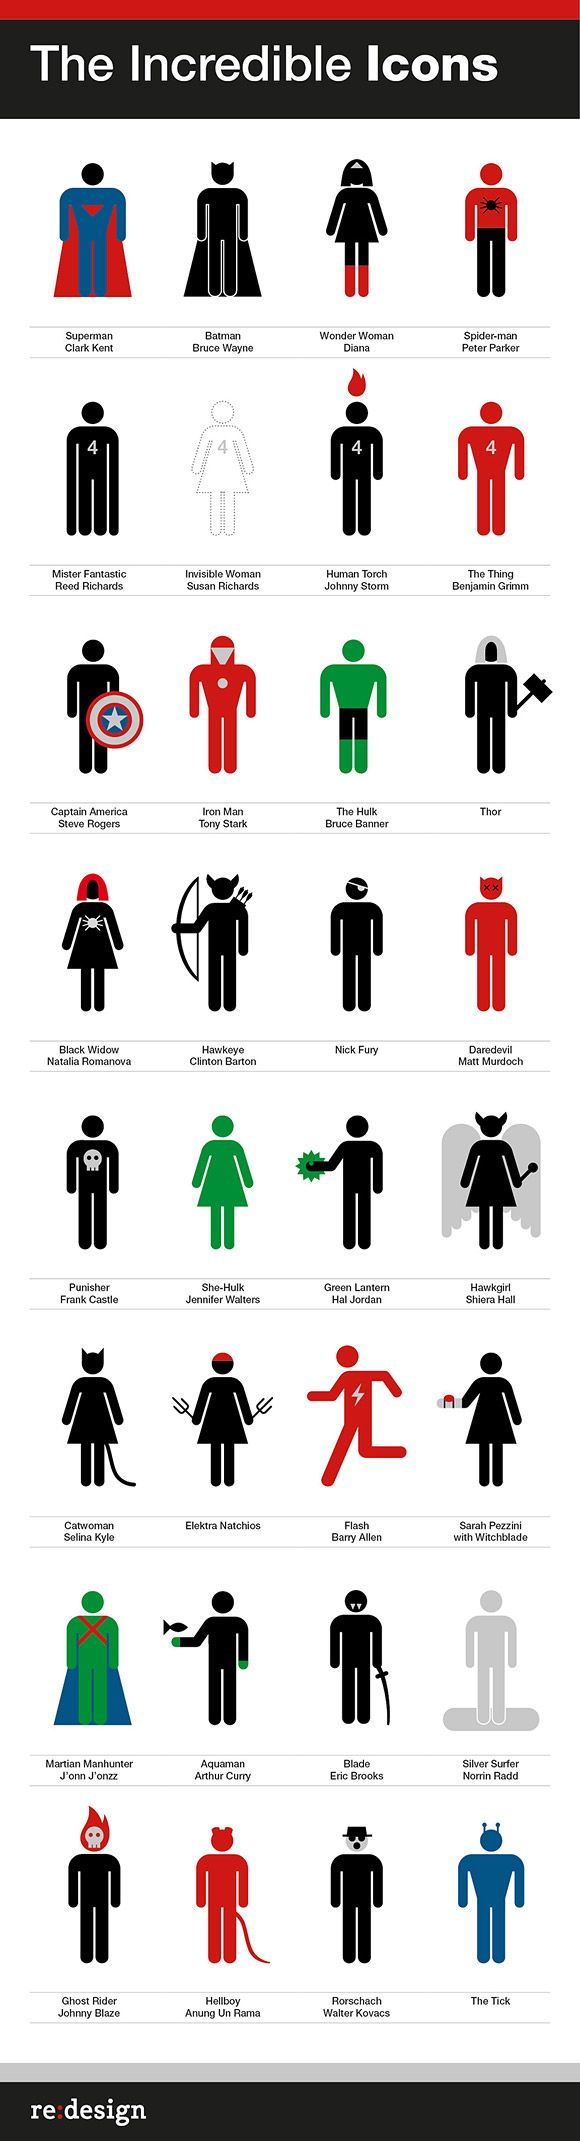 Superheroes-Supervillains-icons-01